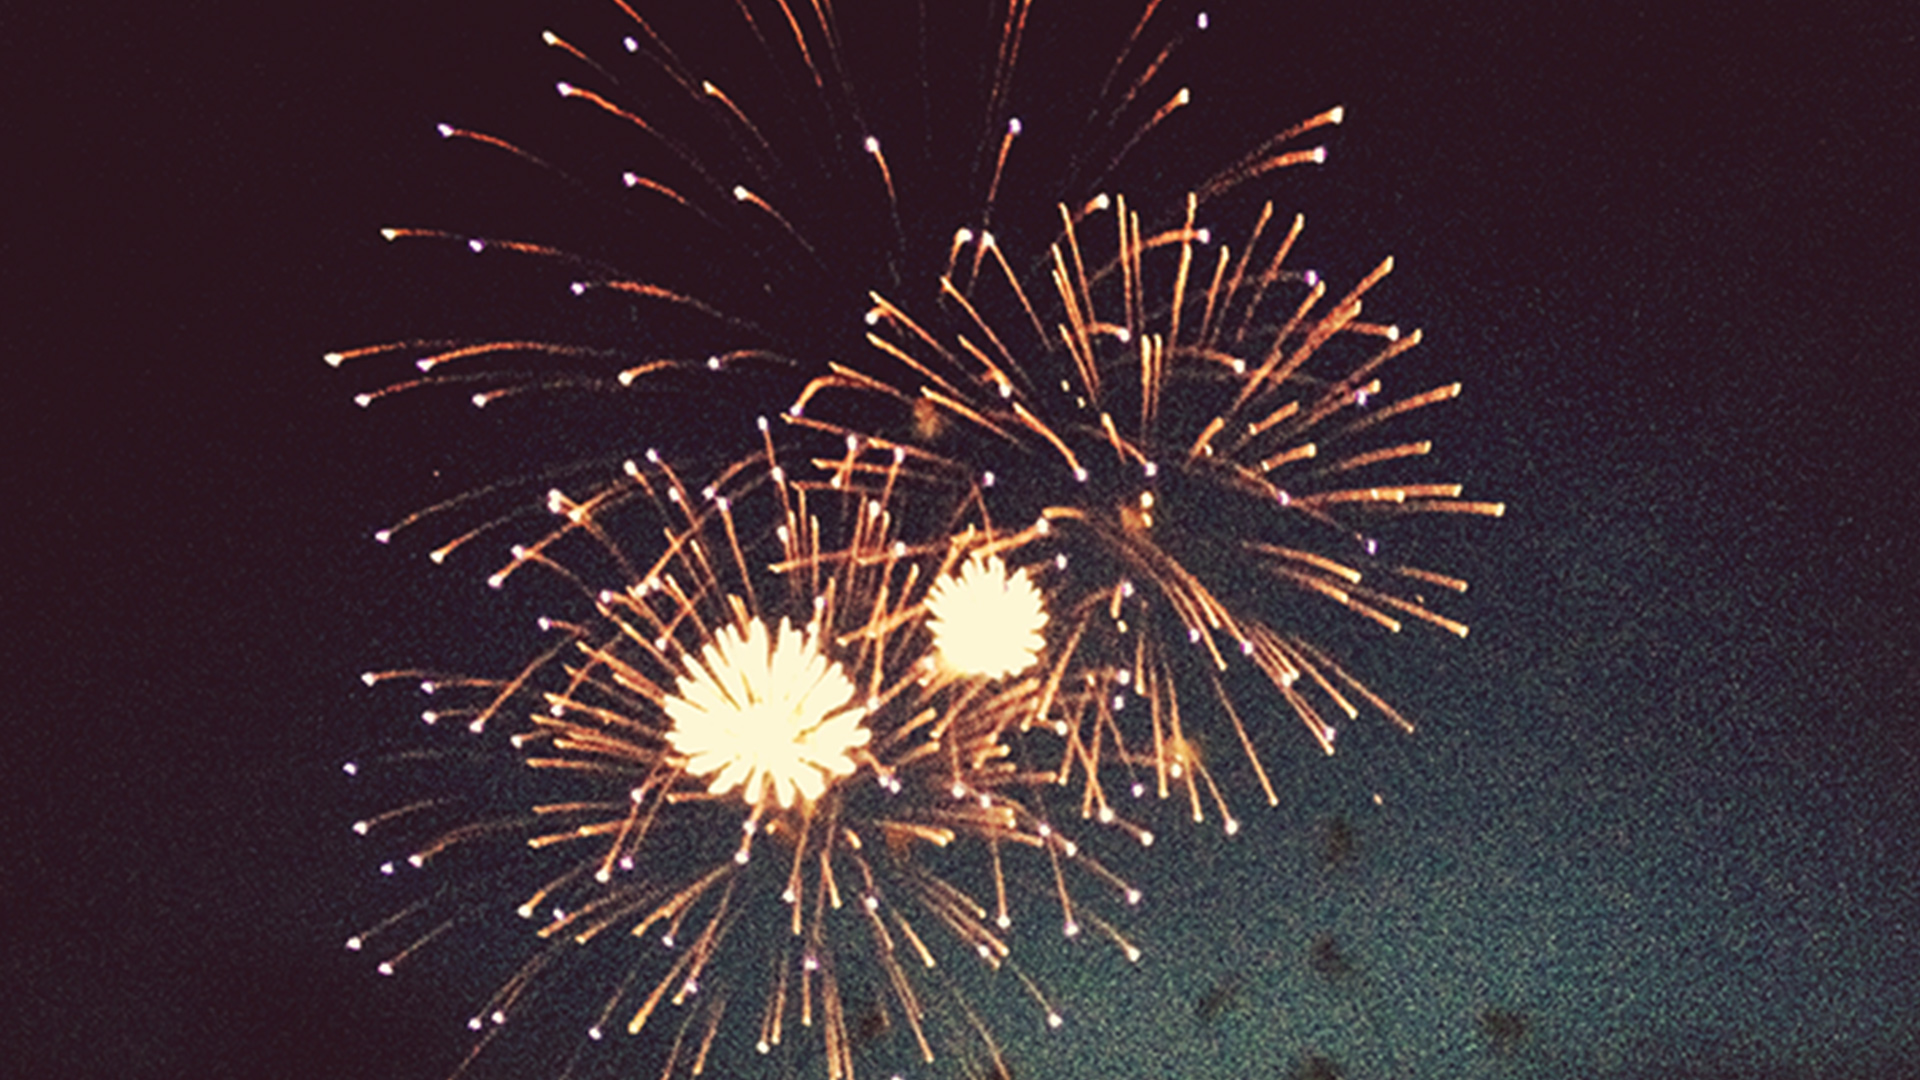 About-Fireworks.jpg